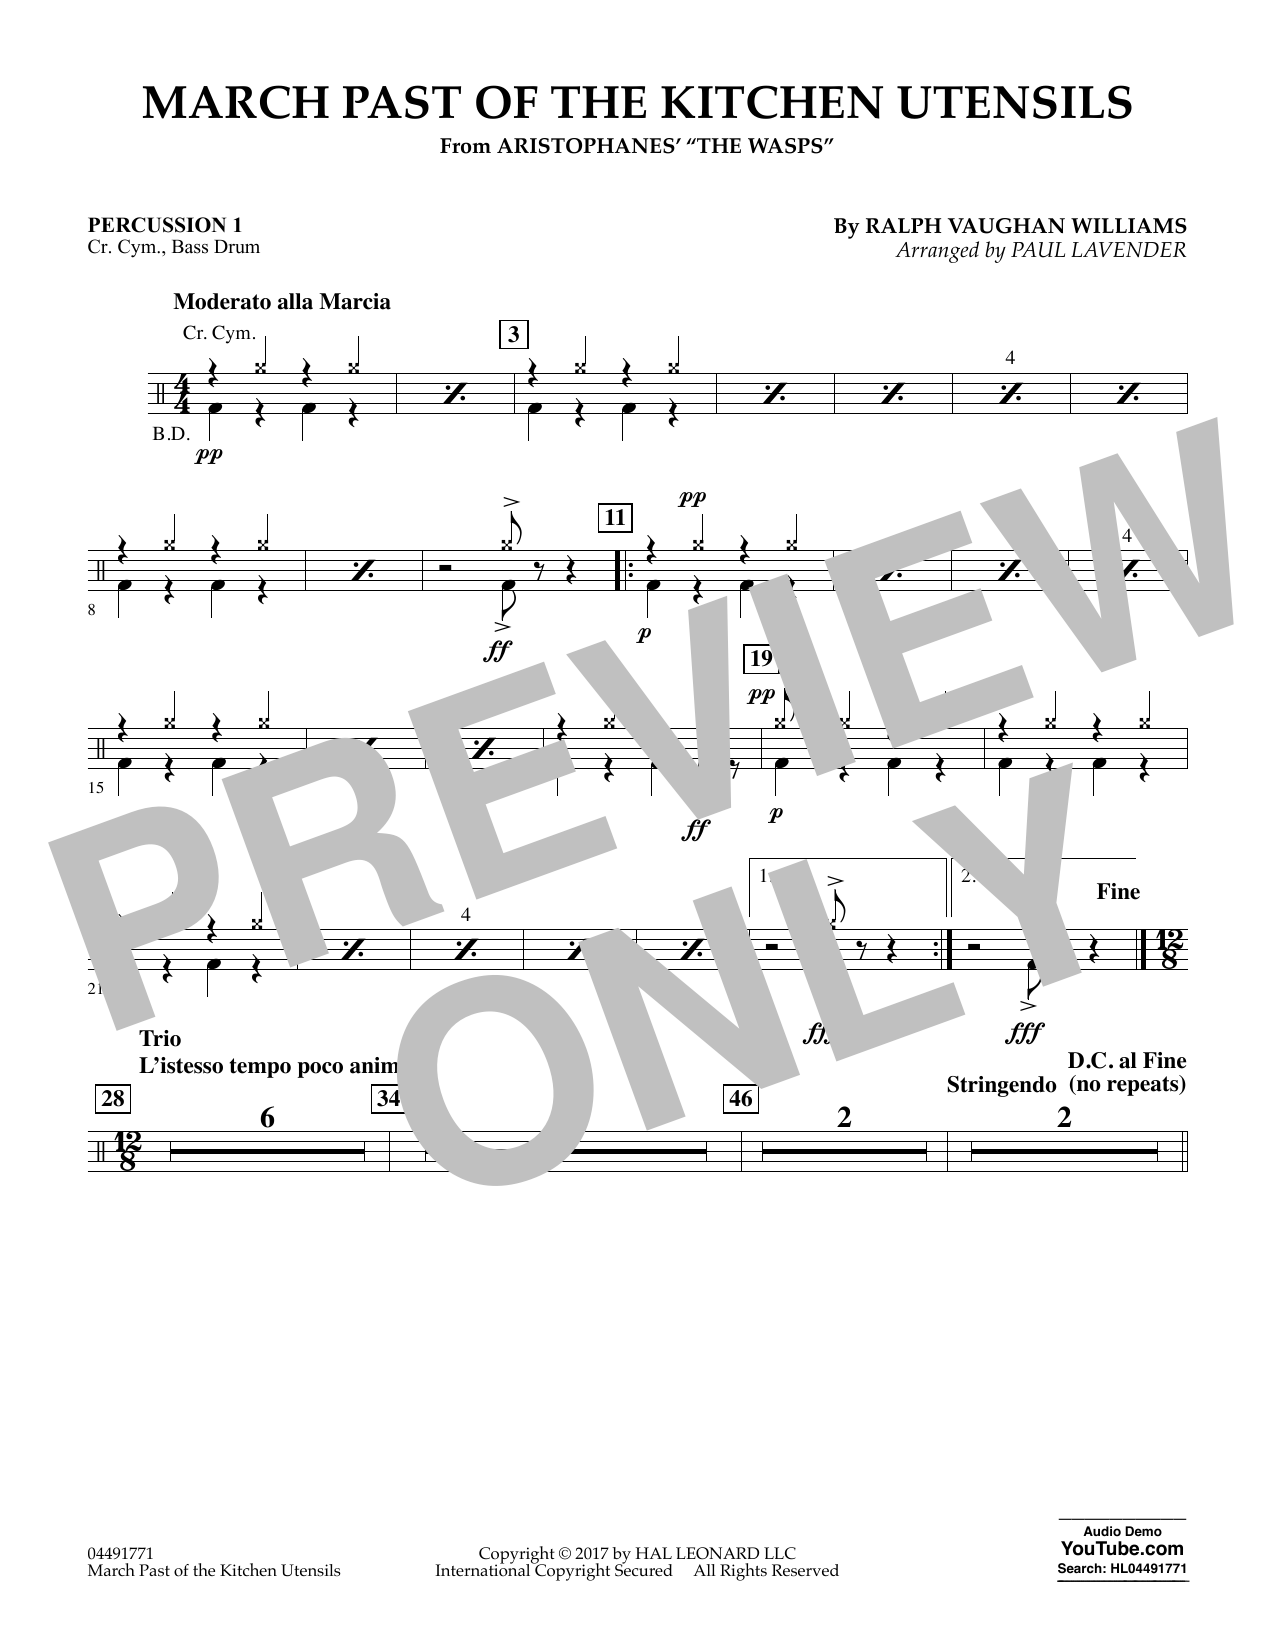 Paul Lavender March Past of the Kitchen Utensils (from The Wasps) - Percussion 1 sheet music notes and chords. Download Printable PDF.